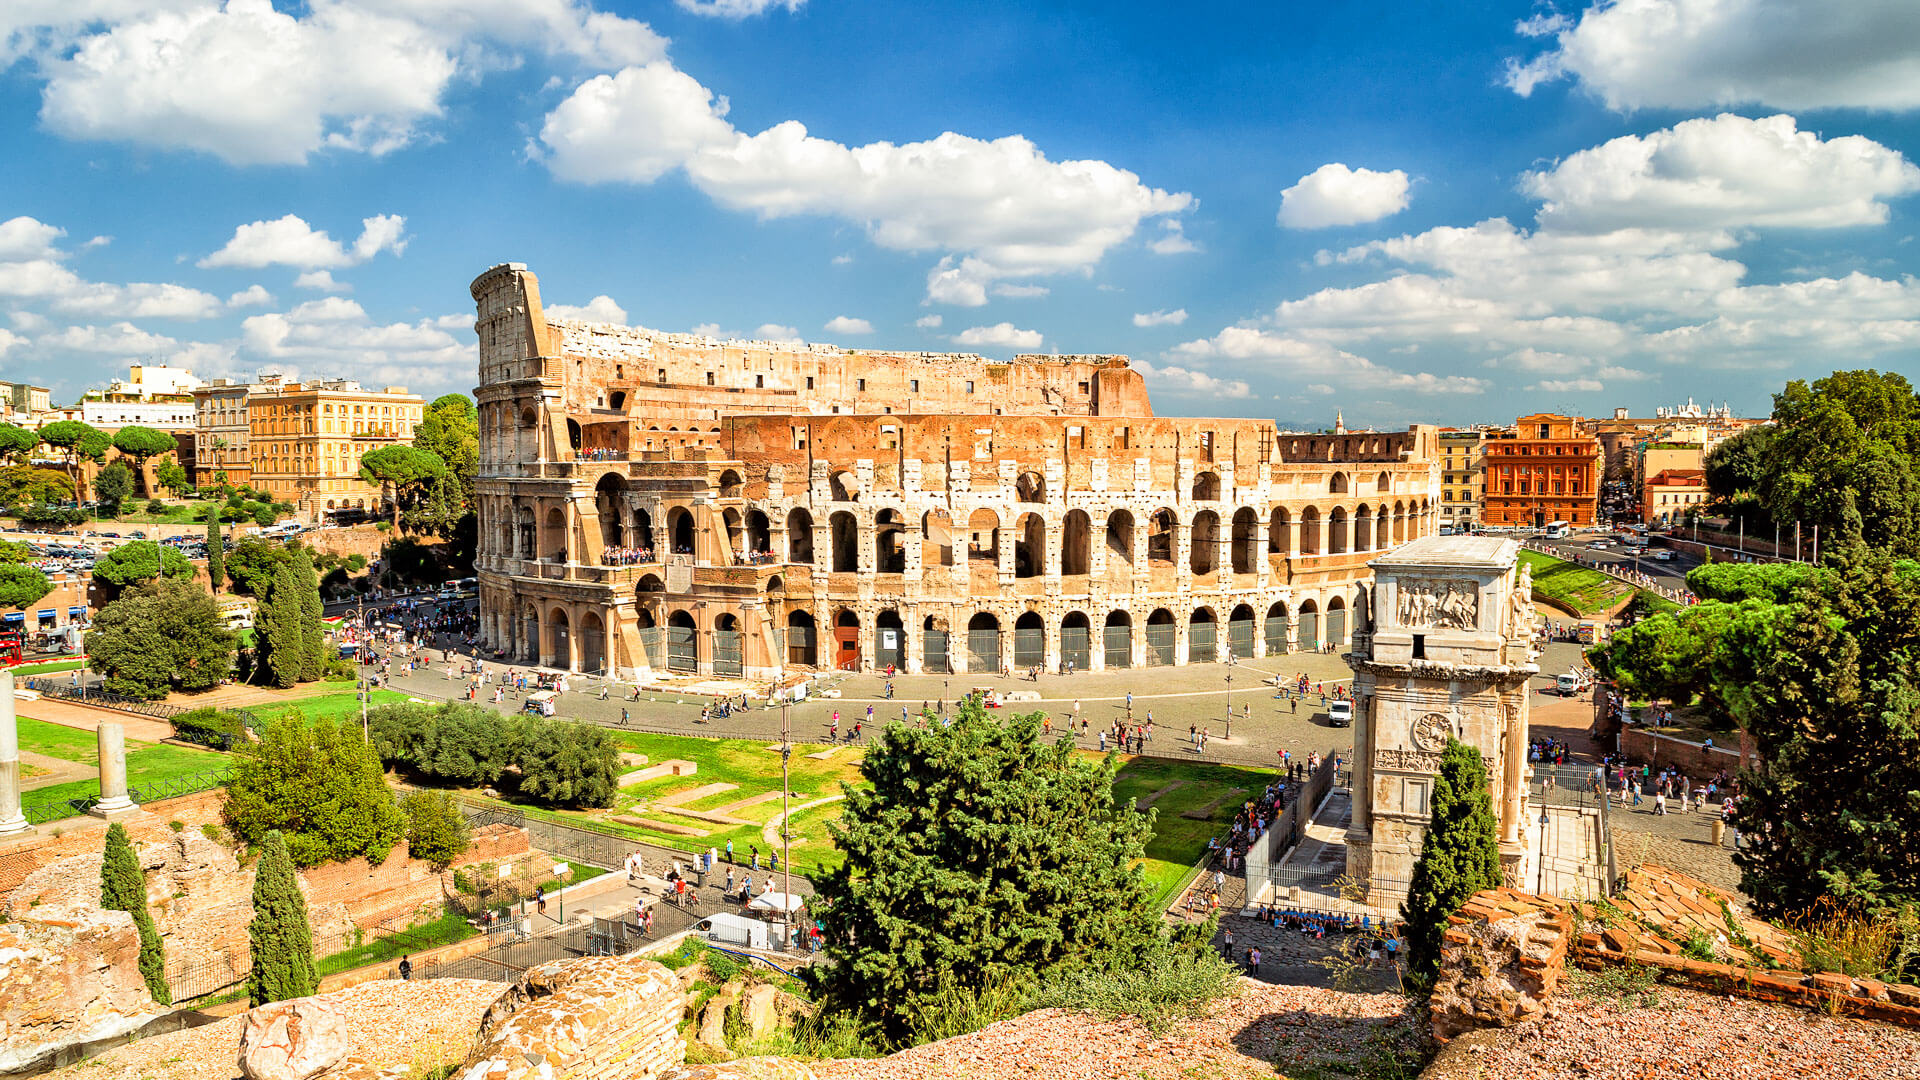 Panoramic view the Colosseum in Rome, Italy.